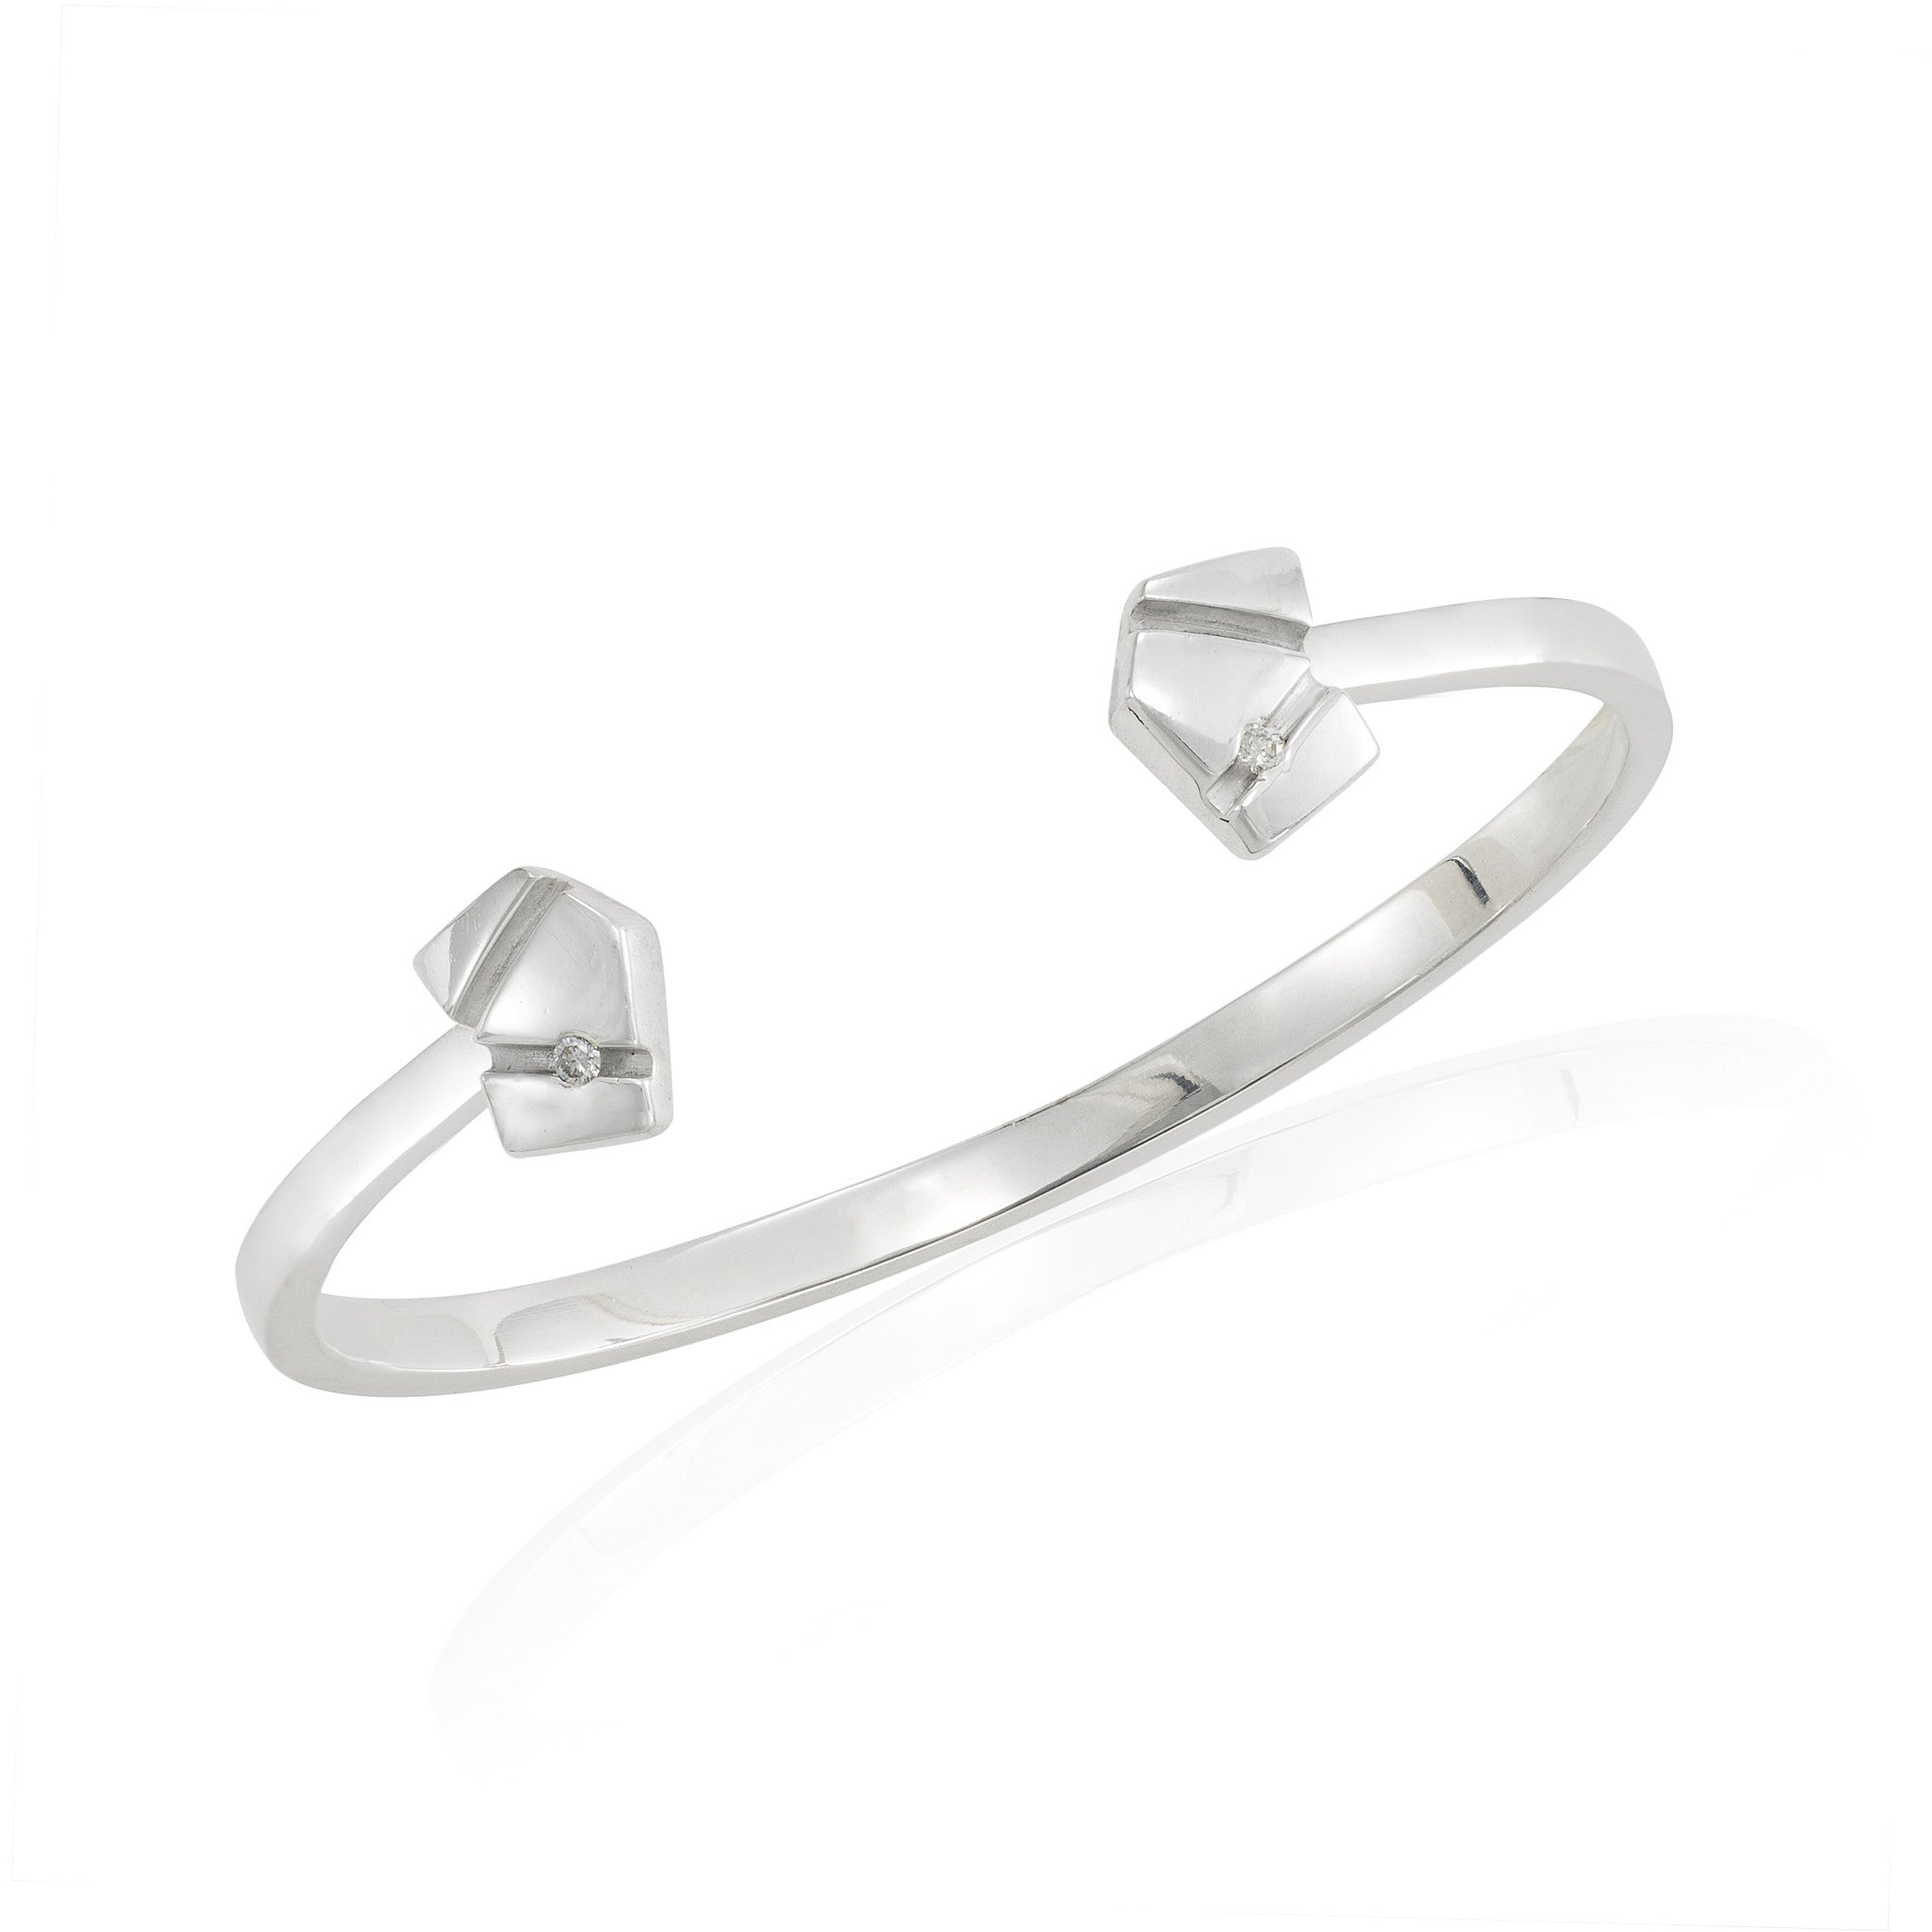 Asymmetrical Open Bangle